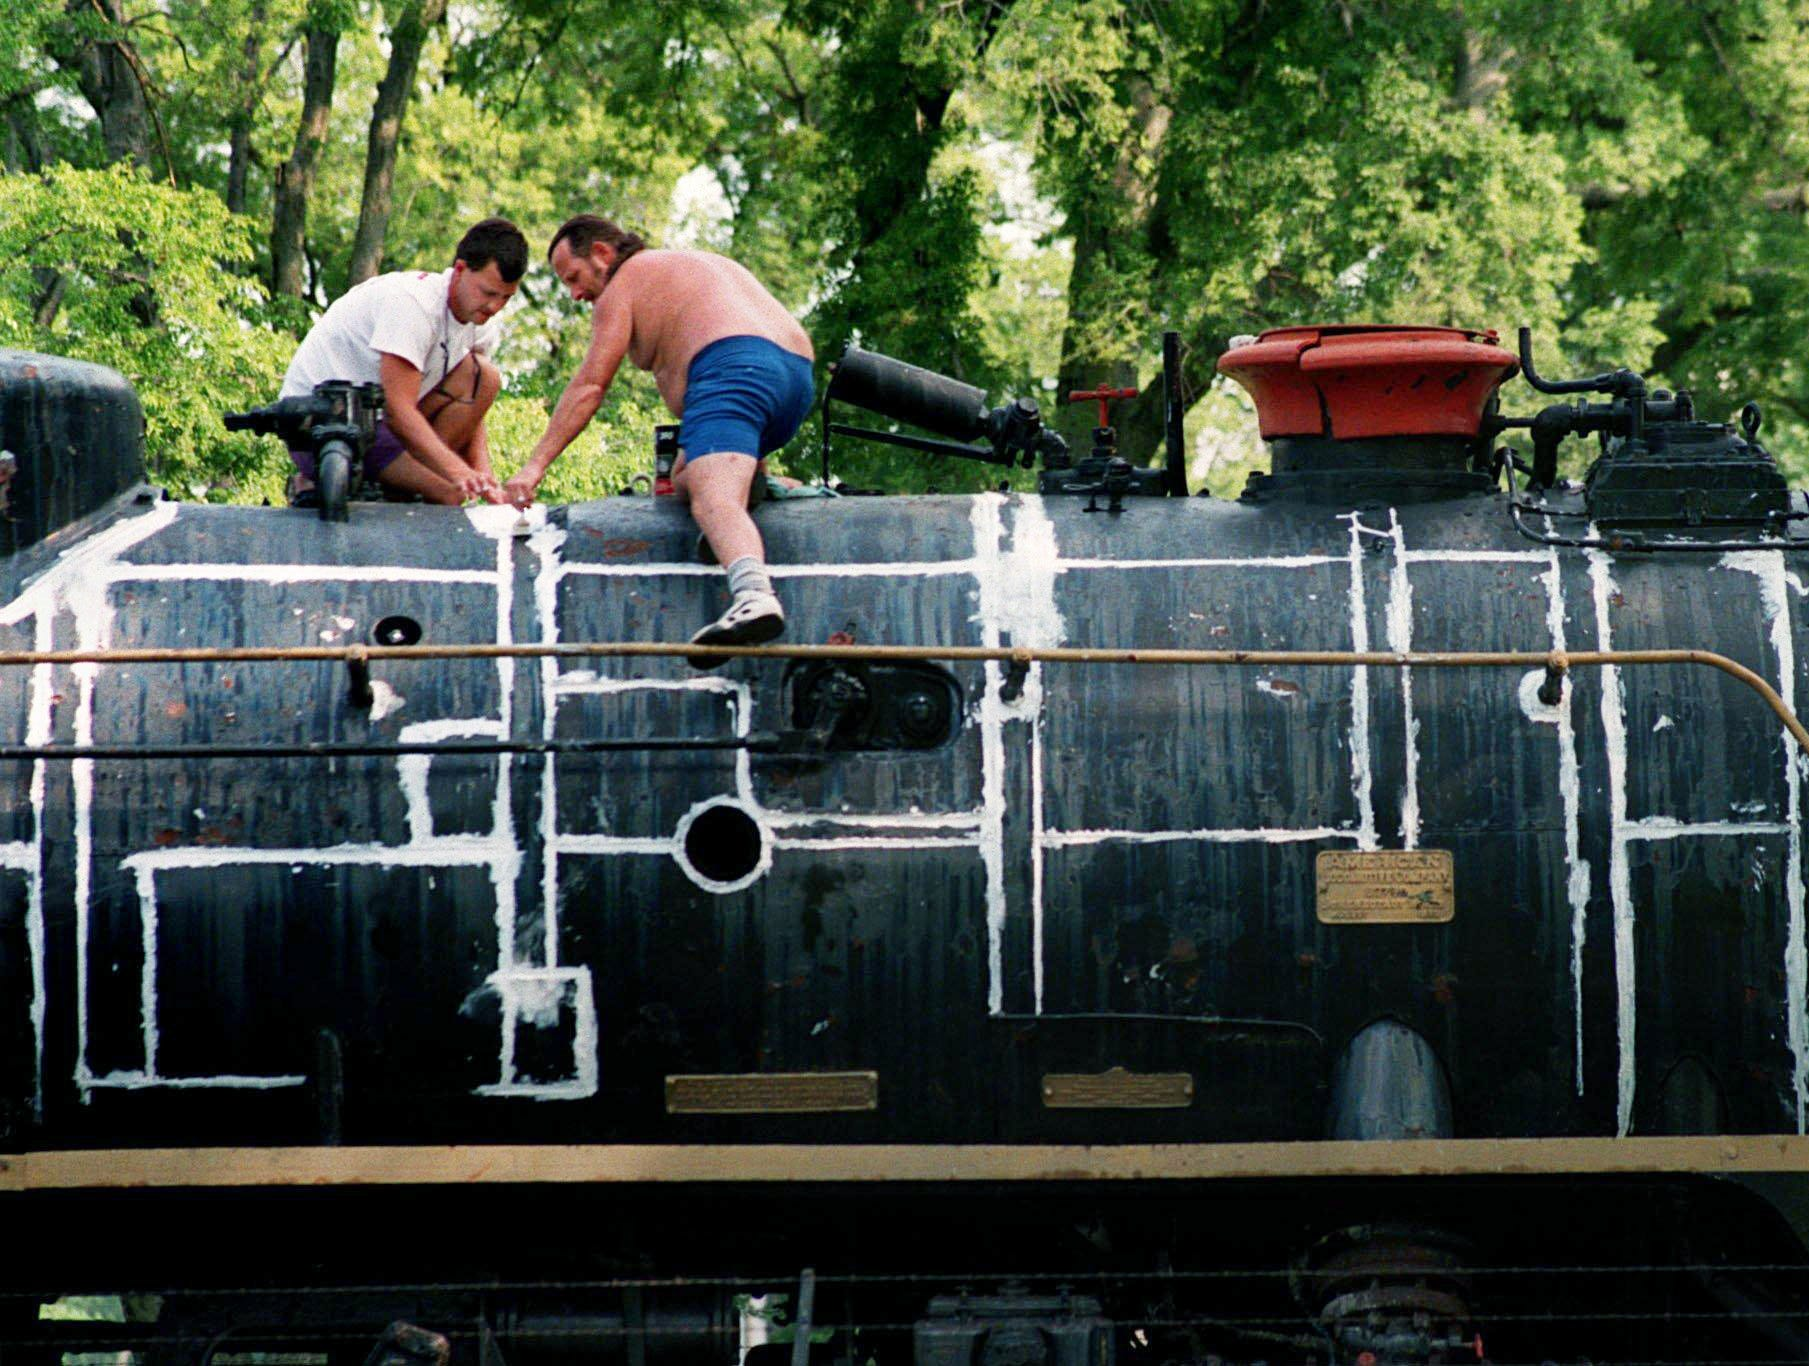 Joe White, right, and his son Joe White IV, seal the seams of the Nashville, Chattanooga and St.Louis steam locomotive 576 in Centennial Park July 23, 1997. Asbestos was removed from around the boiler before White and his son seal the engine before painting. The steam engine was presented to Nashville in 1953. The engine, built in 1942, was used extensively during WW II to transport personnel and war supplies.